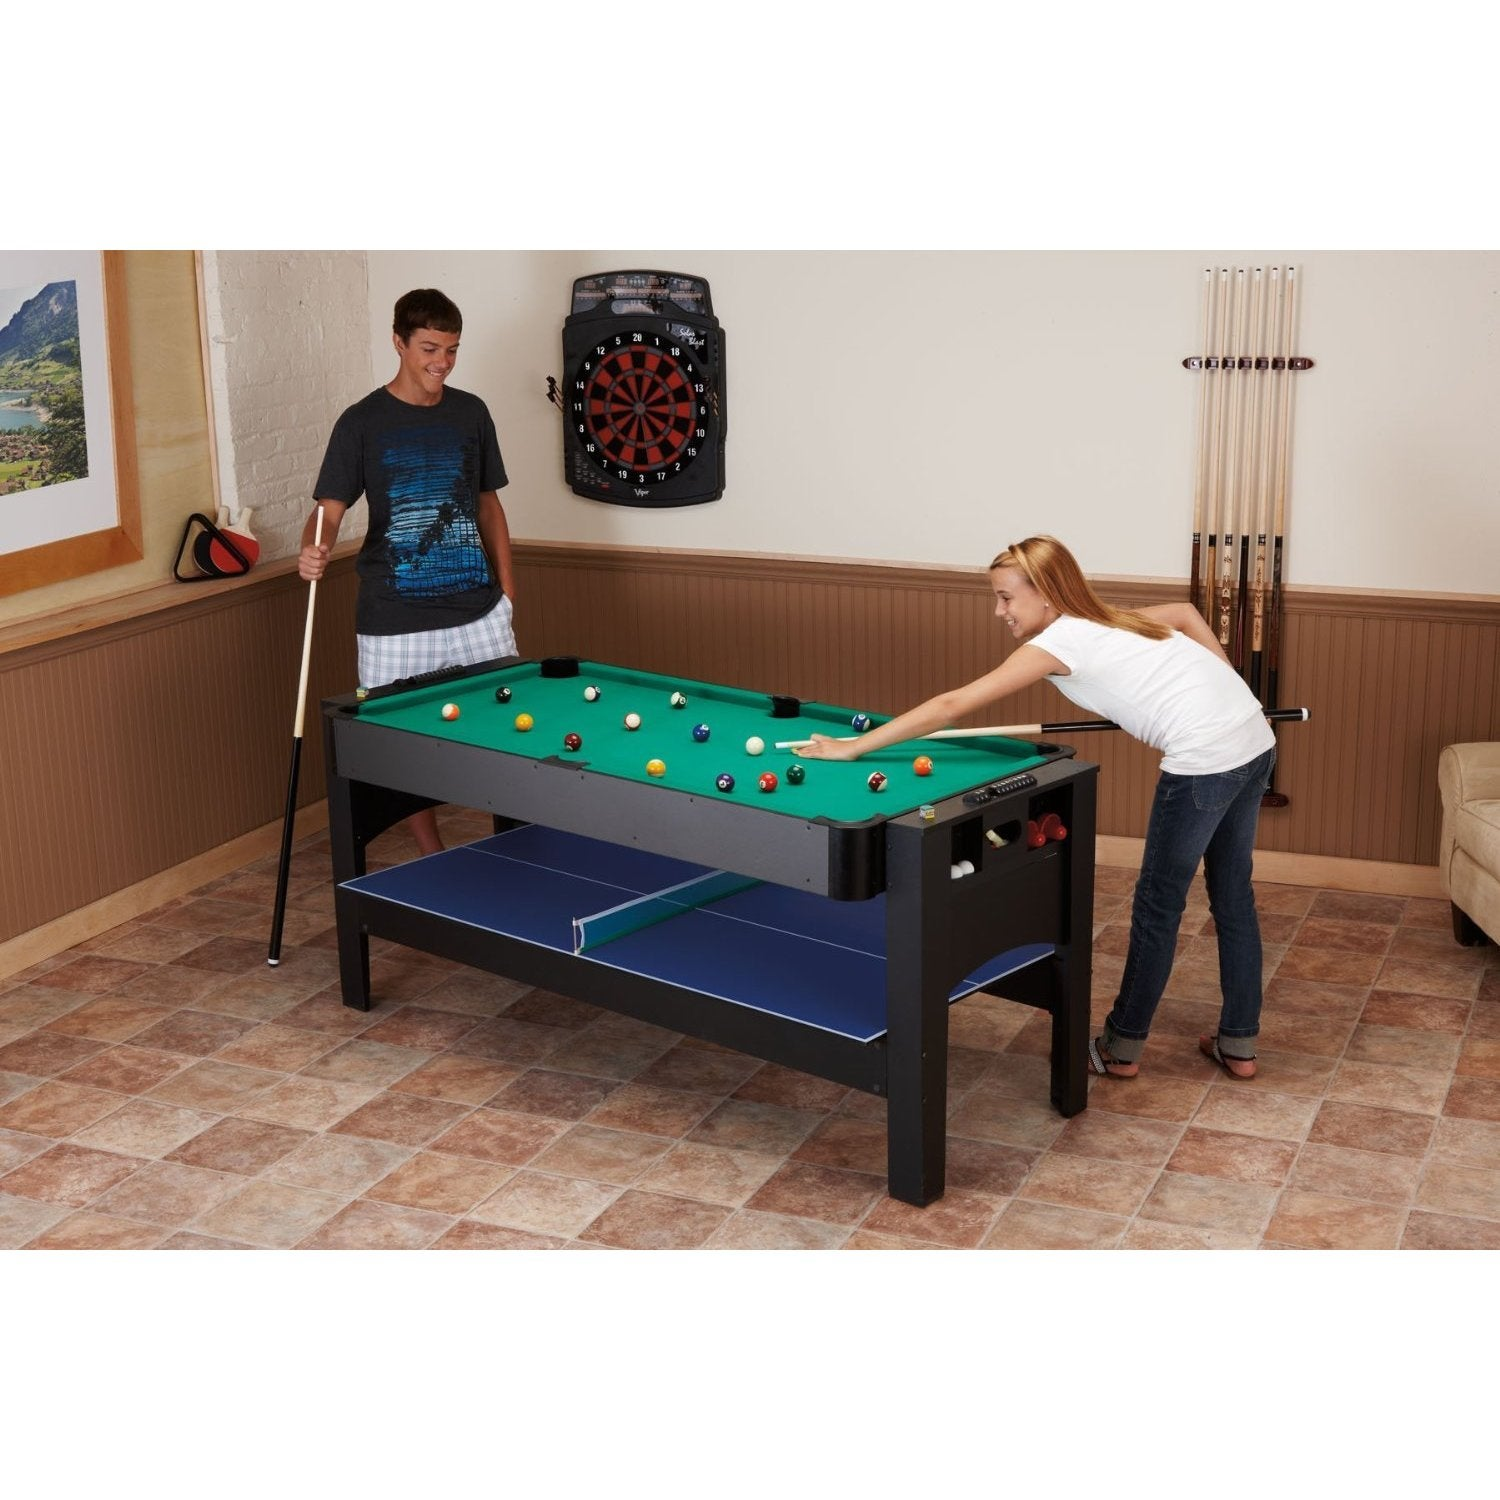 Shop Fat Cat Original In Foot Pockey Table Billiards Air - Six foot pool table